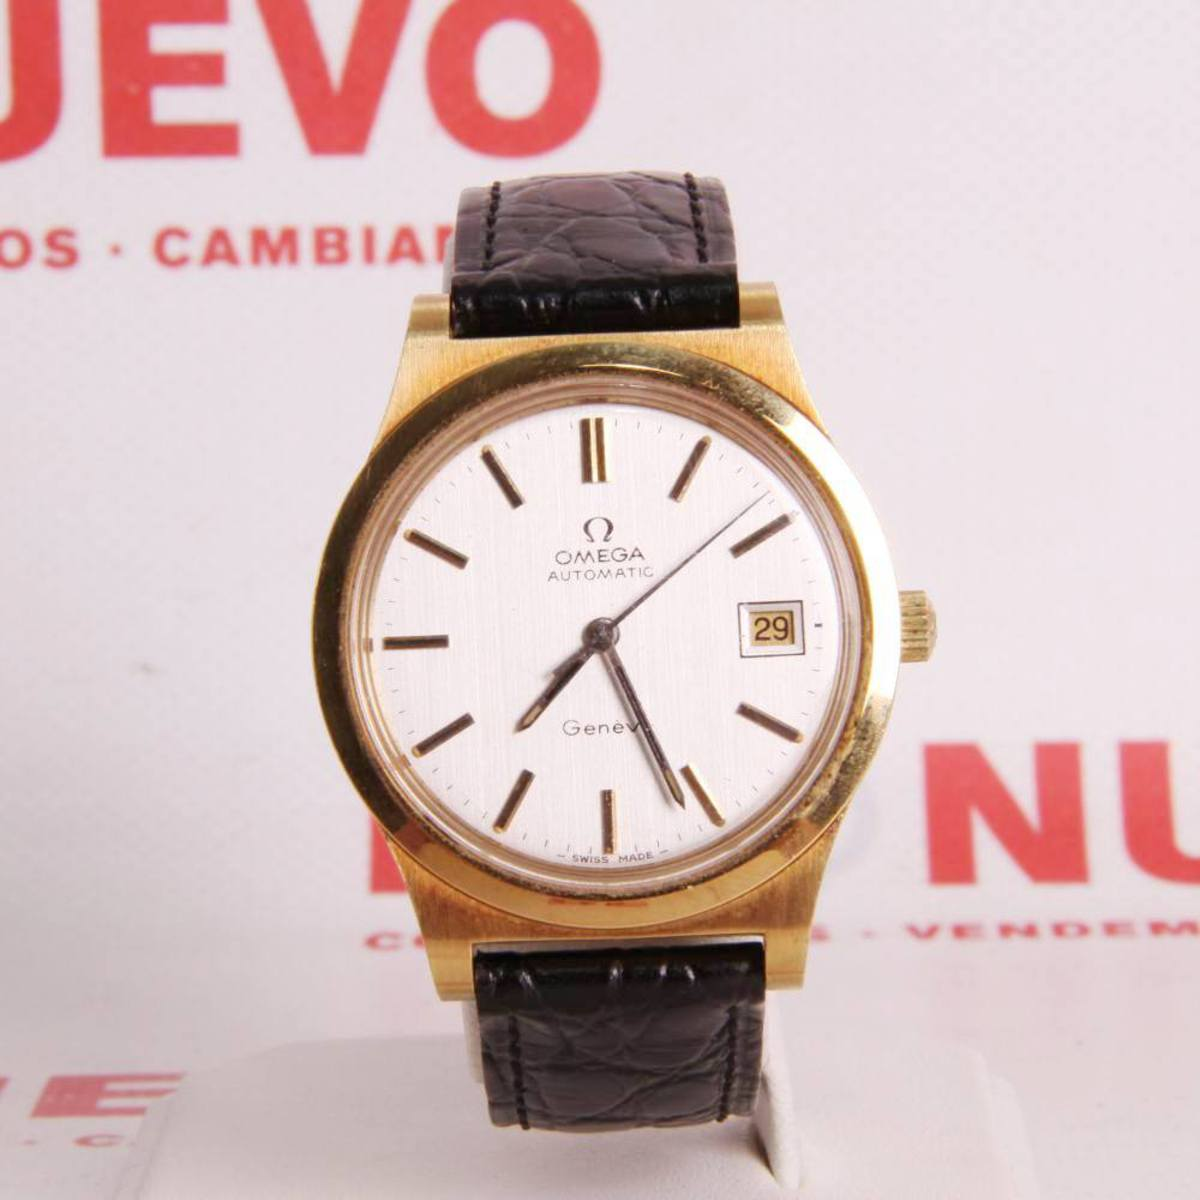 Comprar Reloj OMEGA GENEVE AUTOMATIC de segunda mano E288289 Tienda